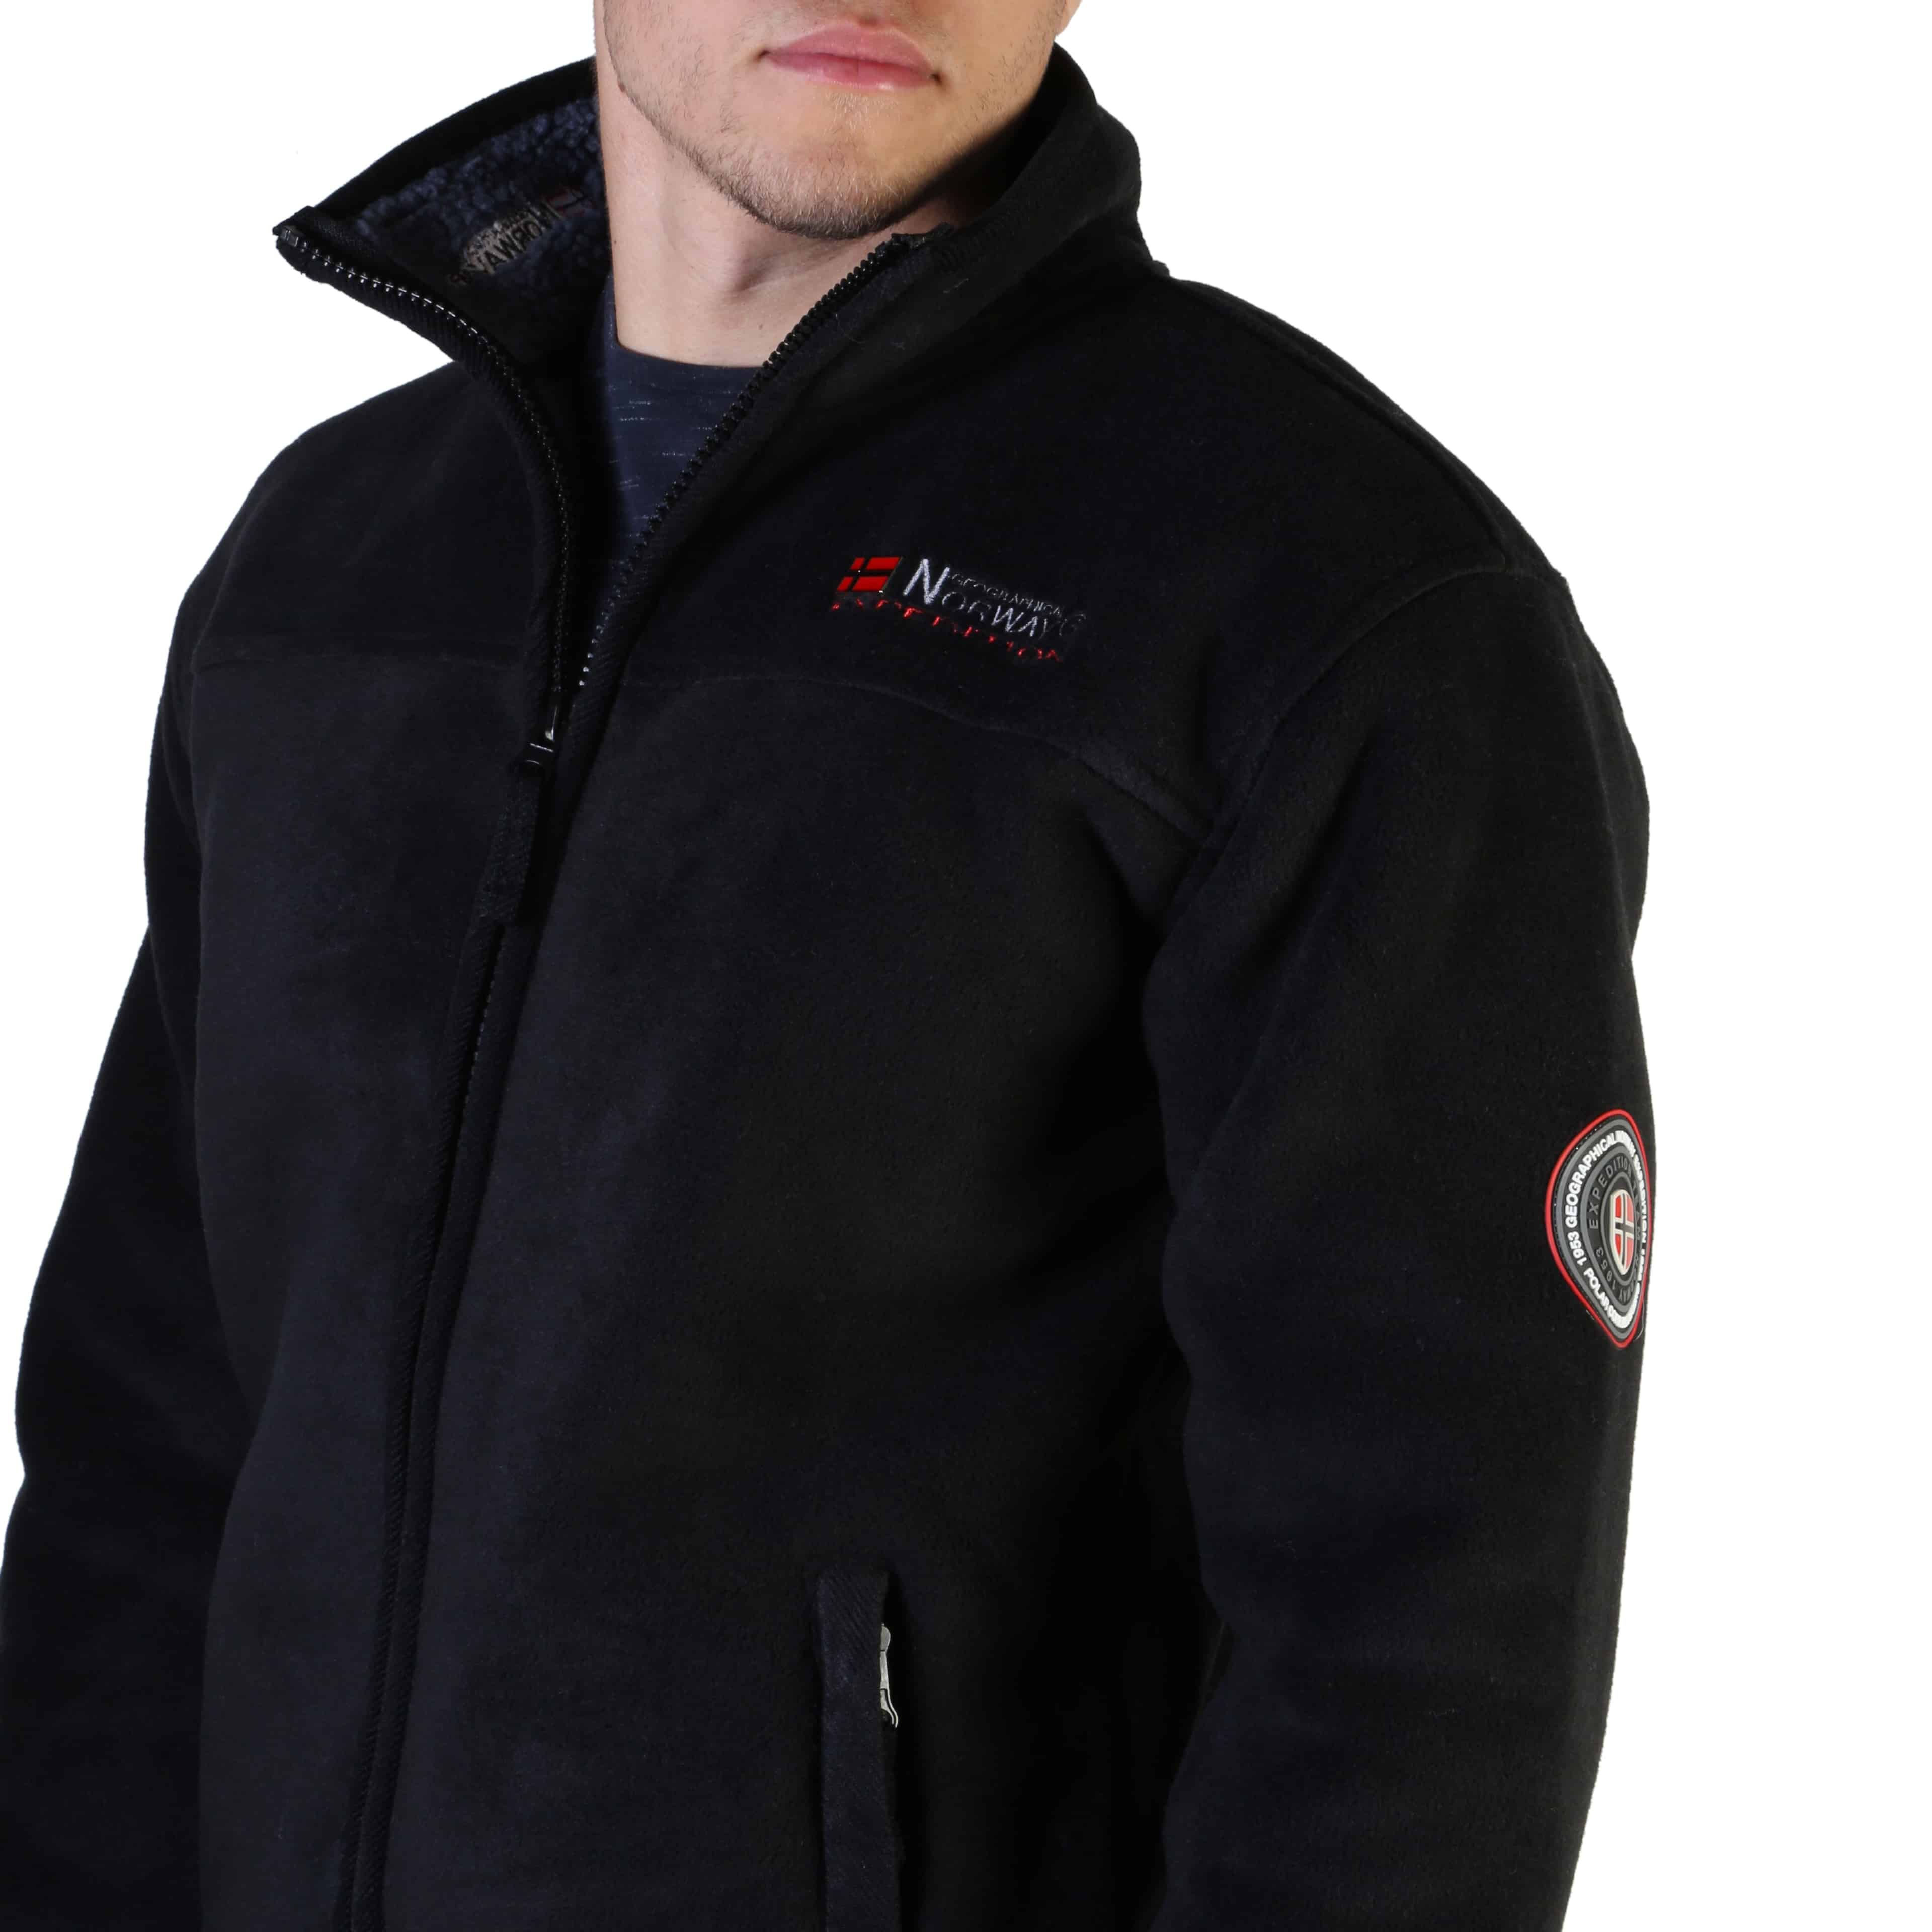 Sweat-shirts Geographical Norway – Usine_man